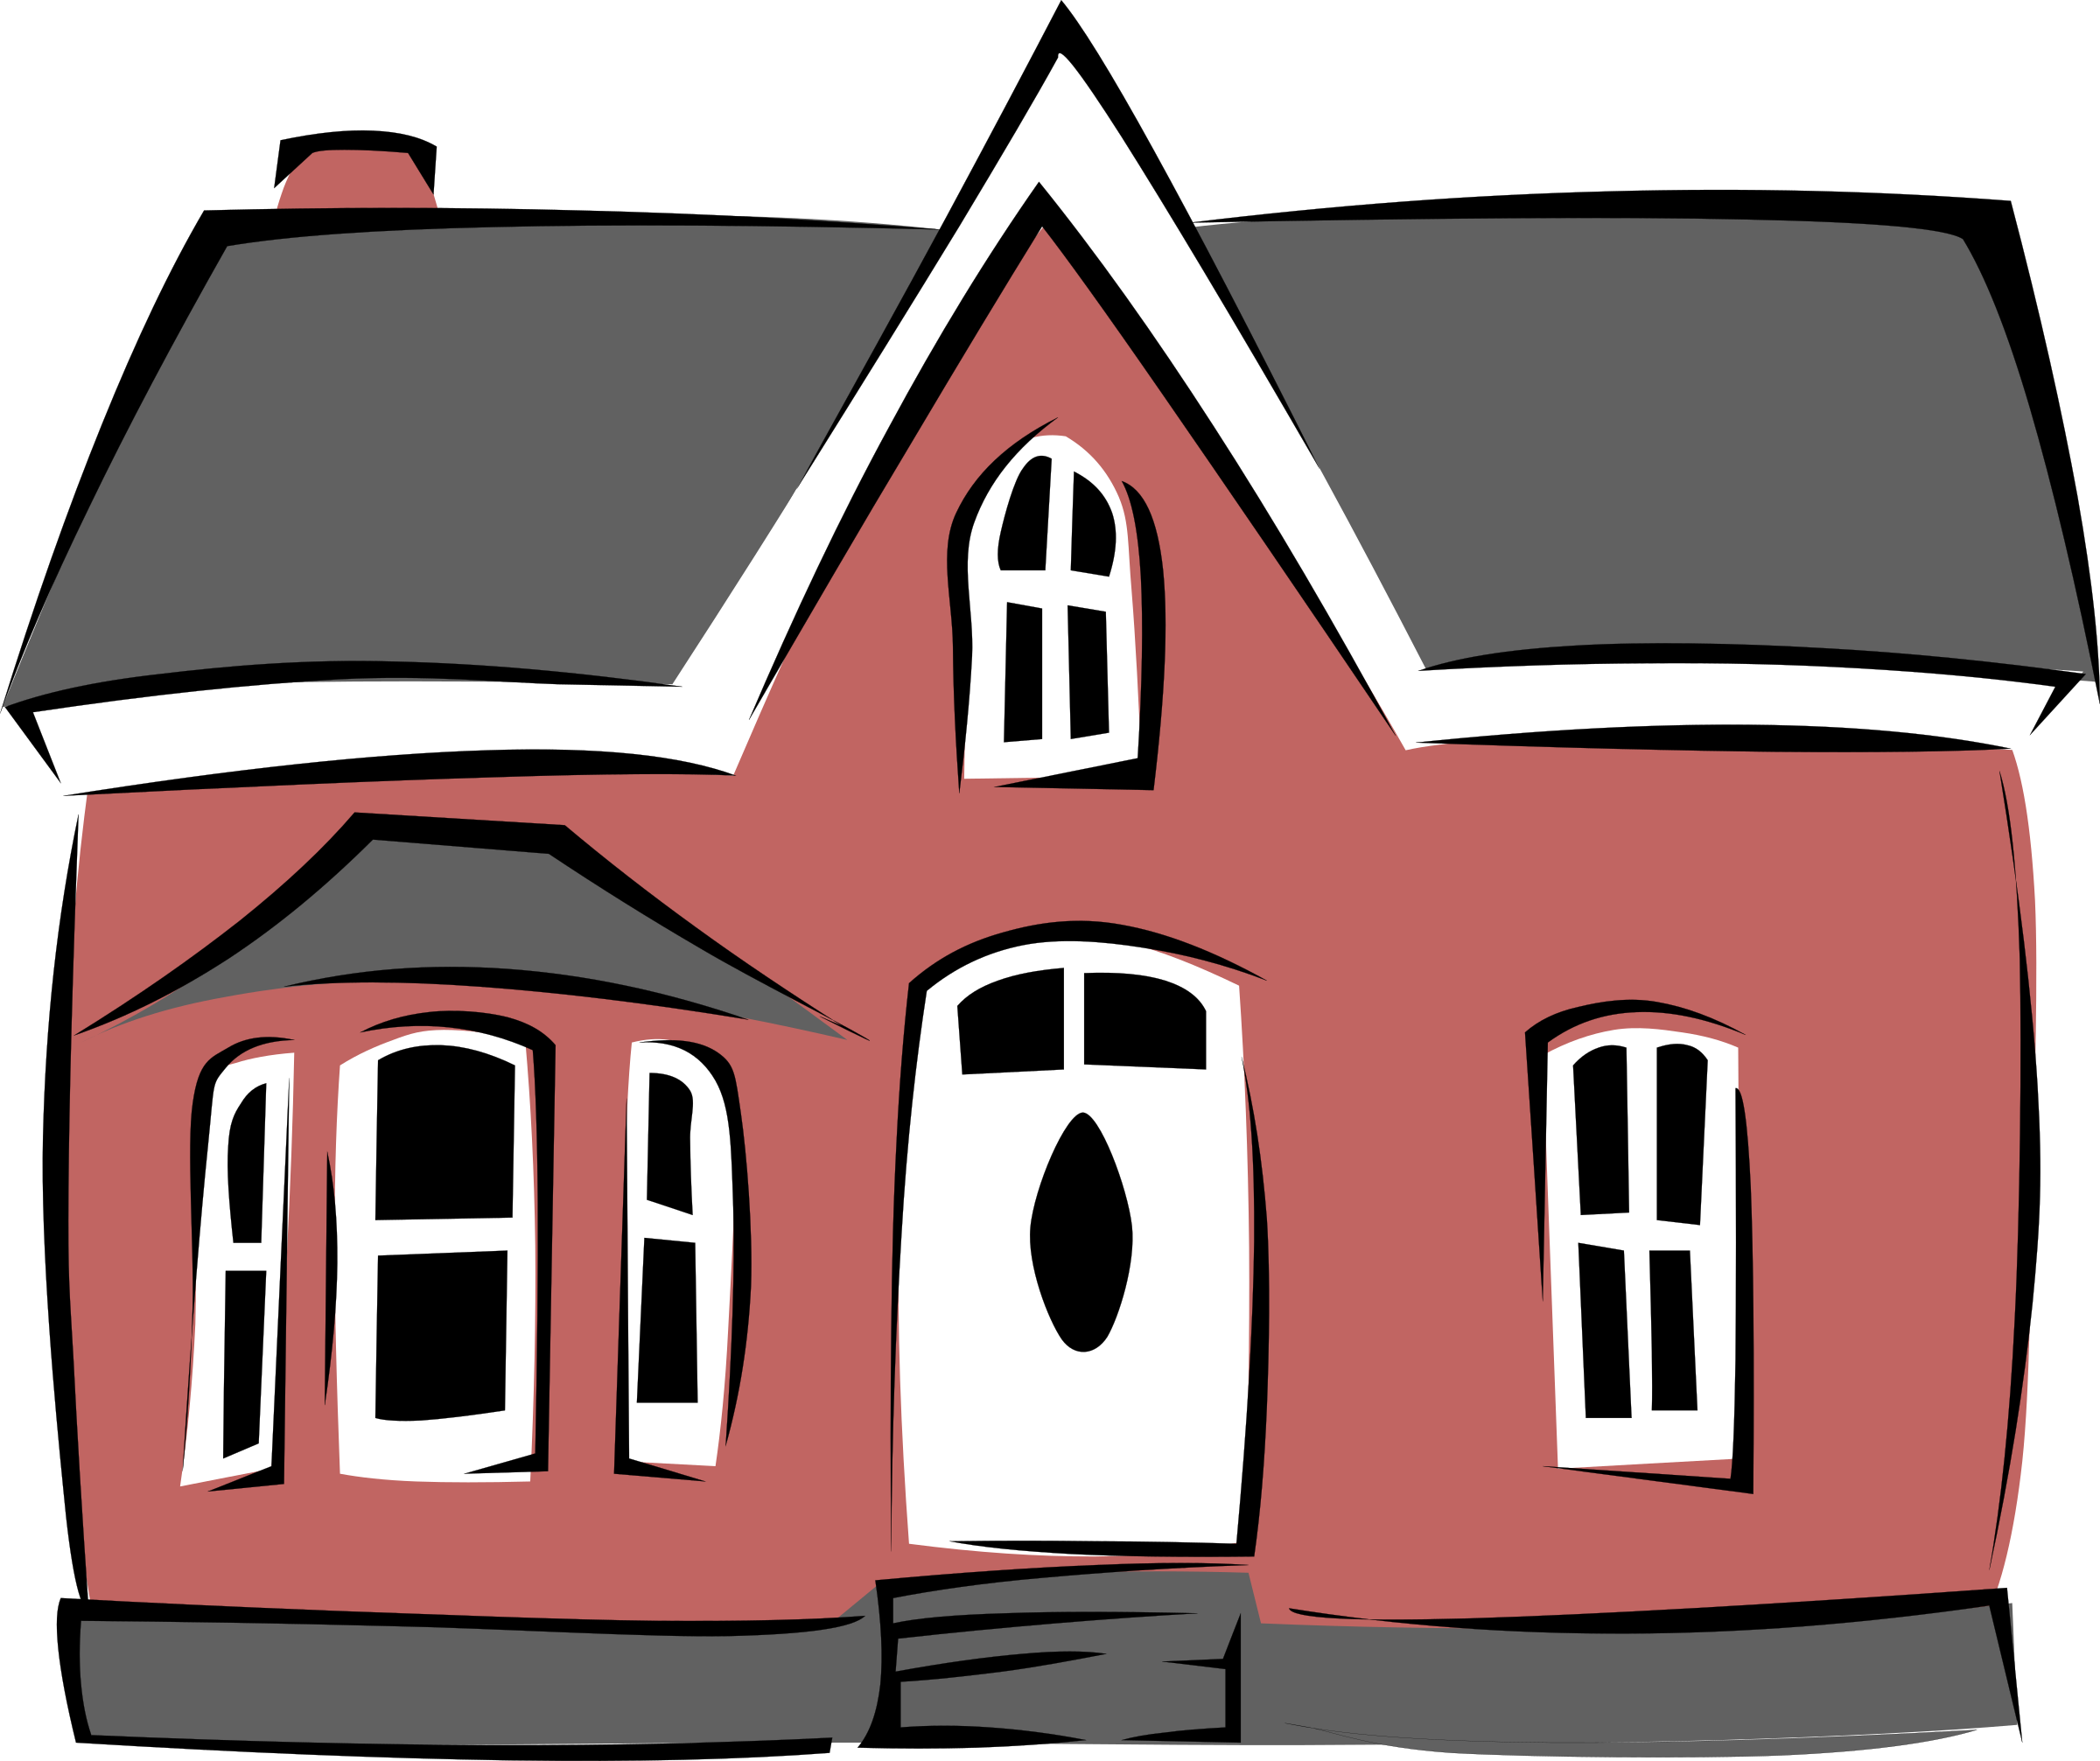 Home clipart small house. Big image png